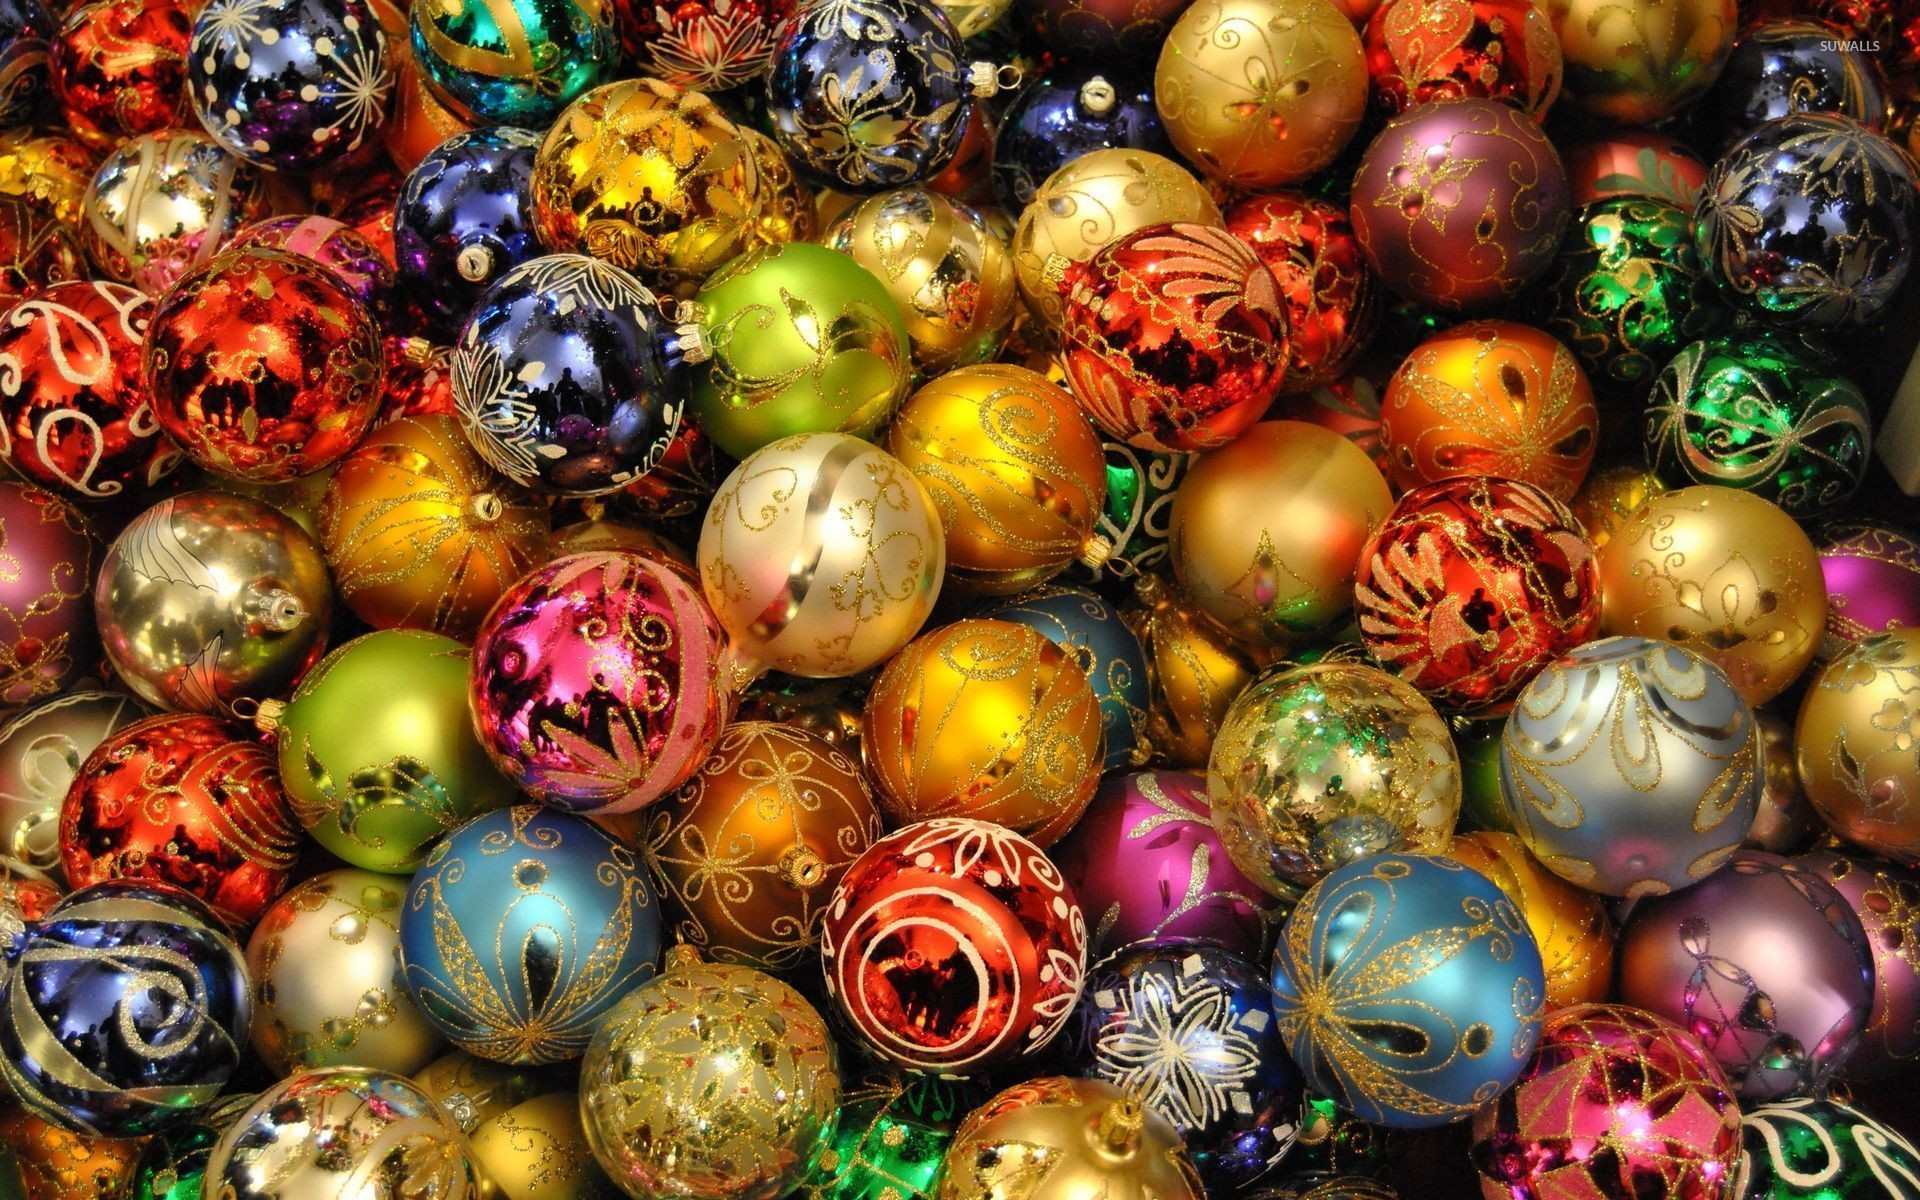 … Christmas Lights Reflecting In The Colorful Baubles Wallpaper. Download